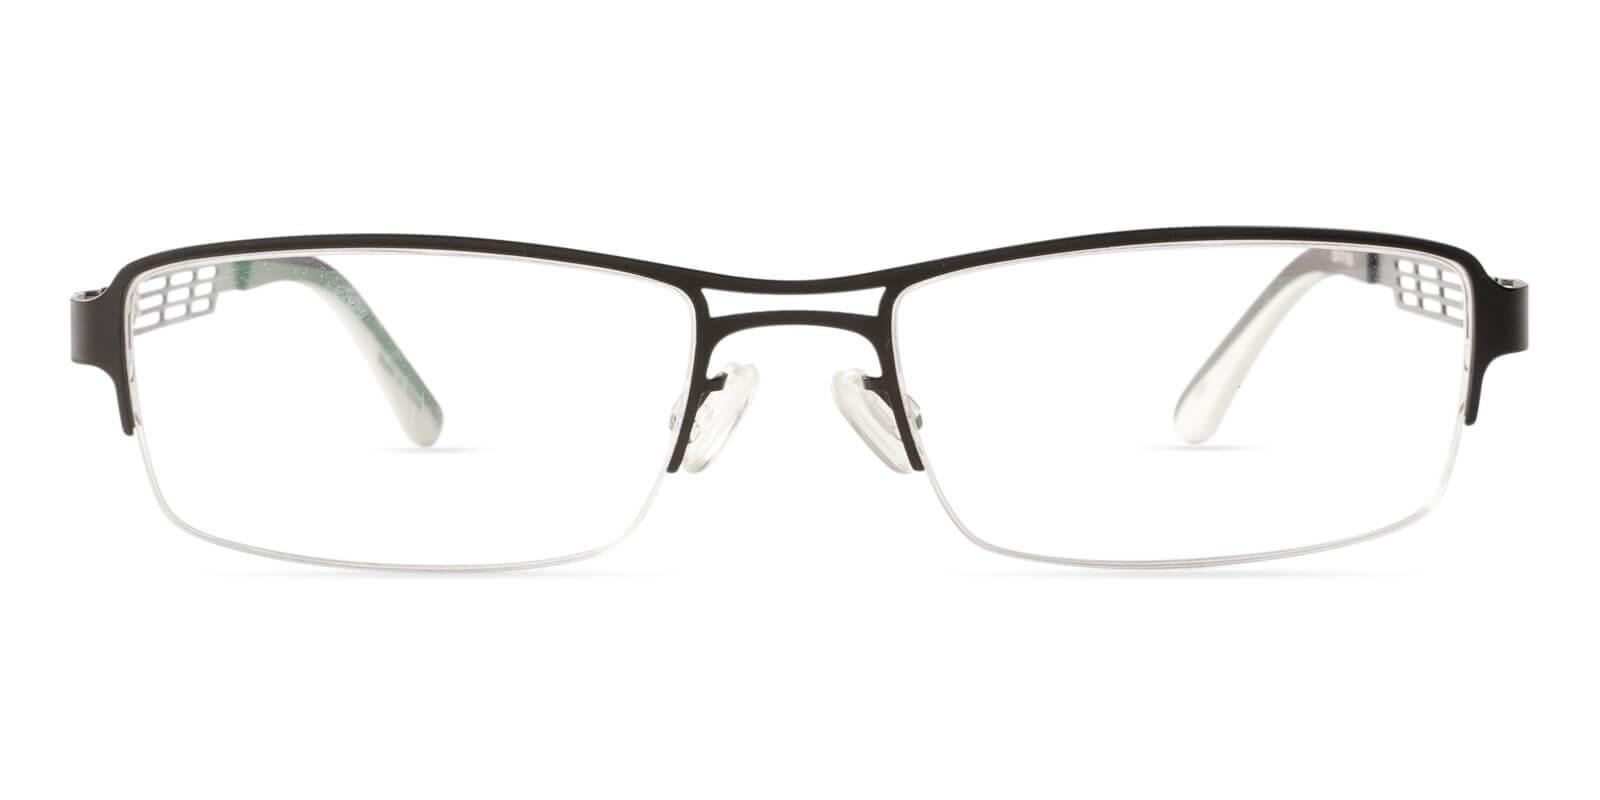 Caleb Black Metal Eyeglasses , NosePads Frames from ABBE Glasses